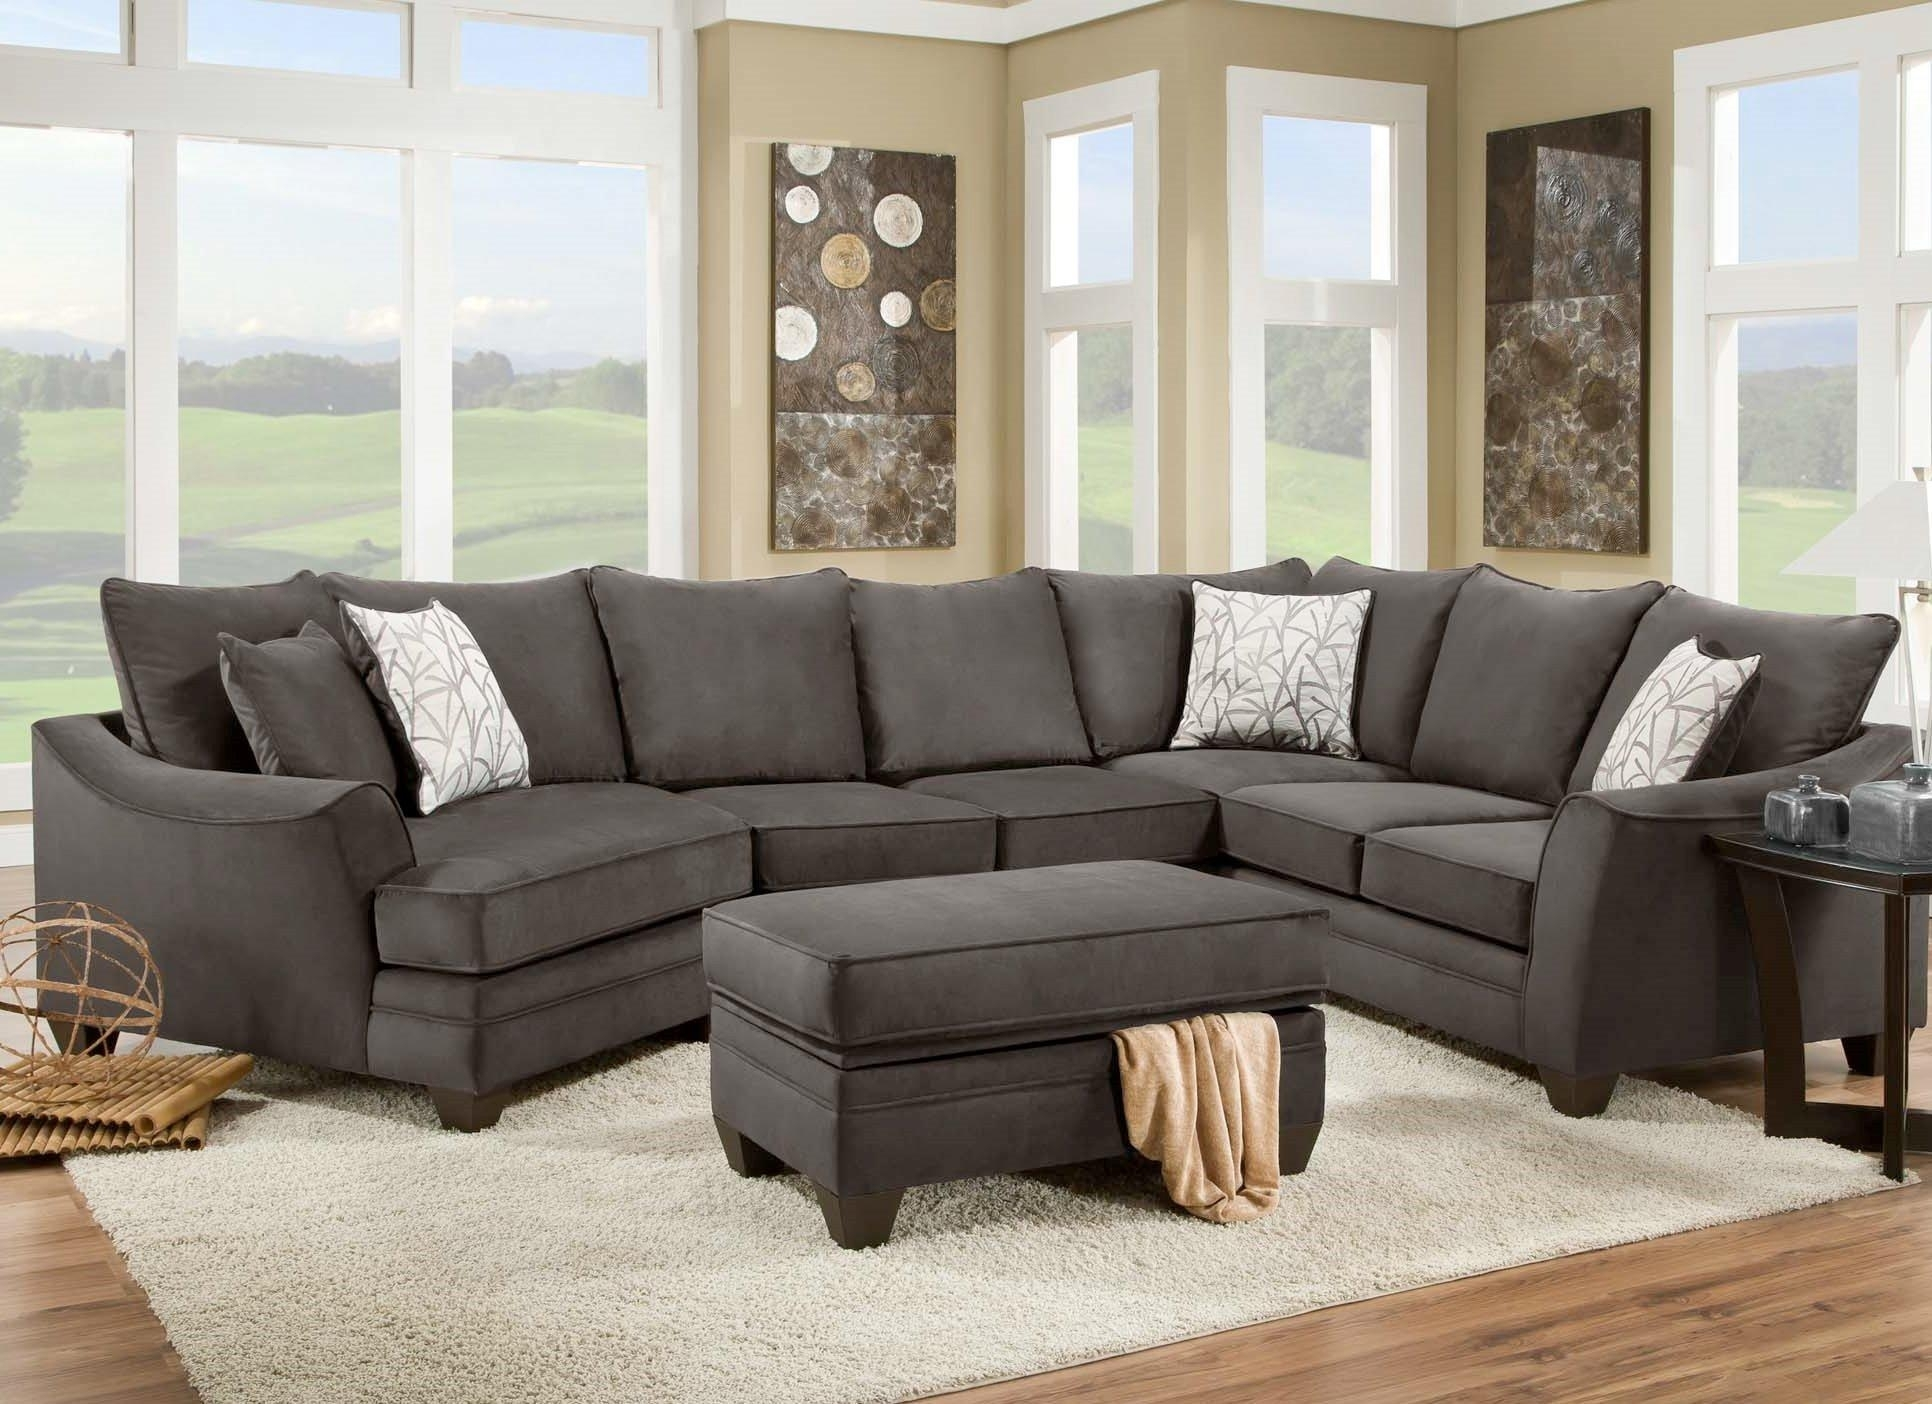 American Furniture 3810 Sectional Sofa That Seats 5 With Left Side Intended For Sectional Sofas In North Carolina (View 5 of 10)